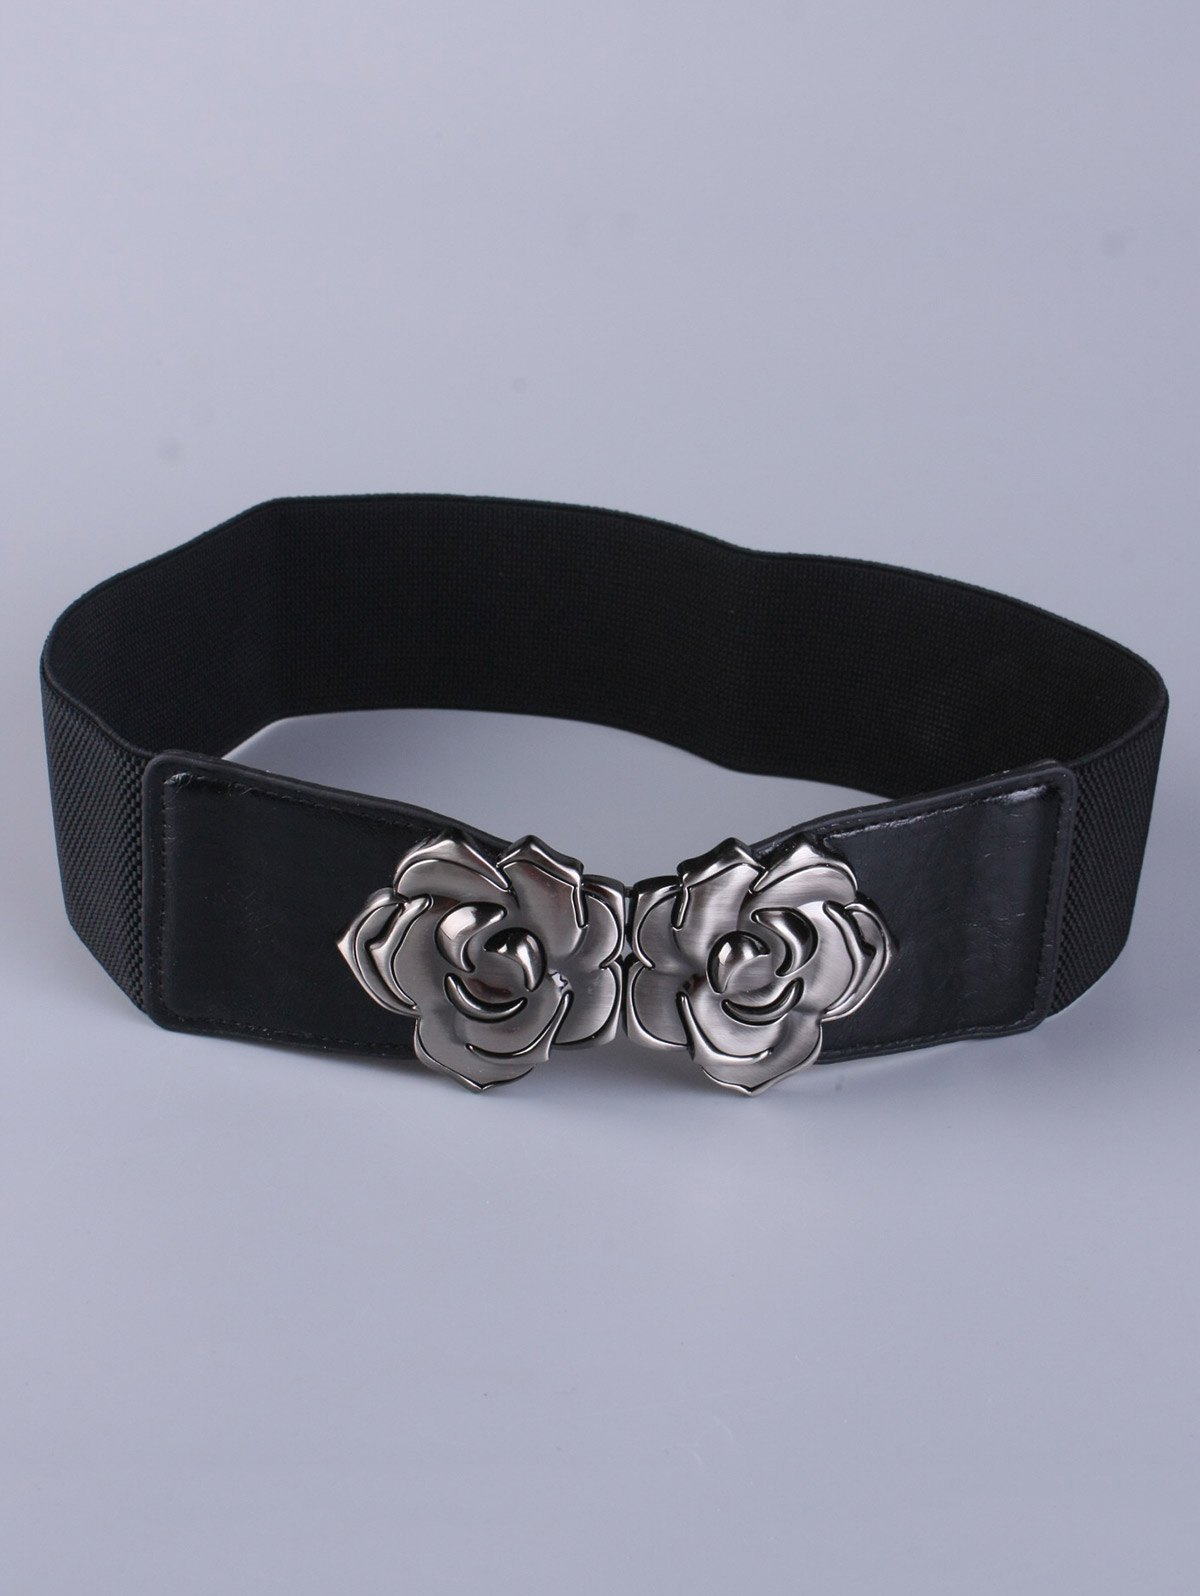 Coat Wear Polished Floral Buckle Wide Stretch Belt